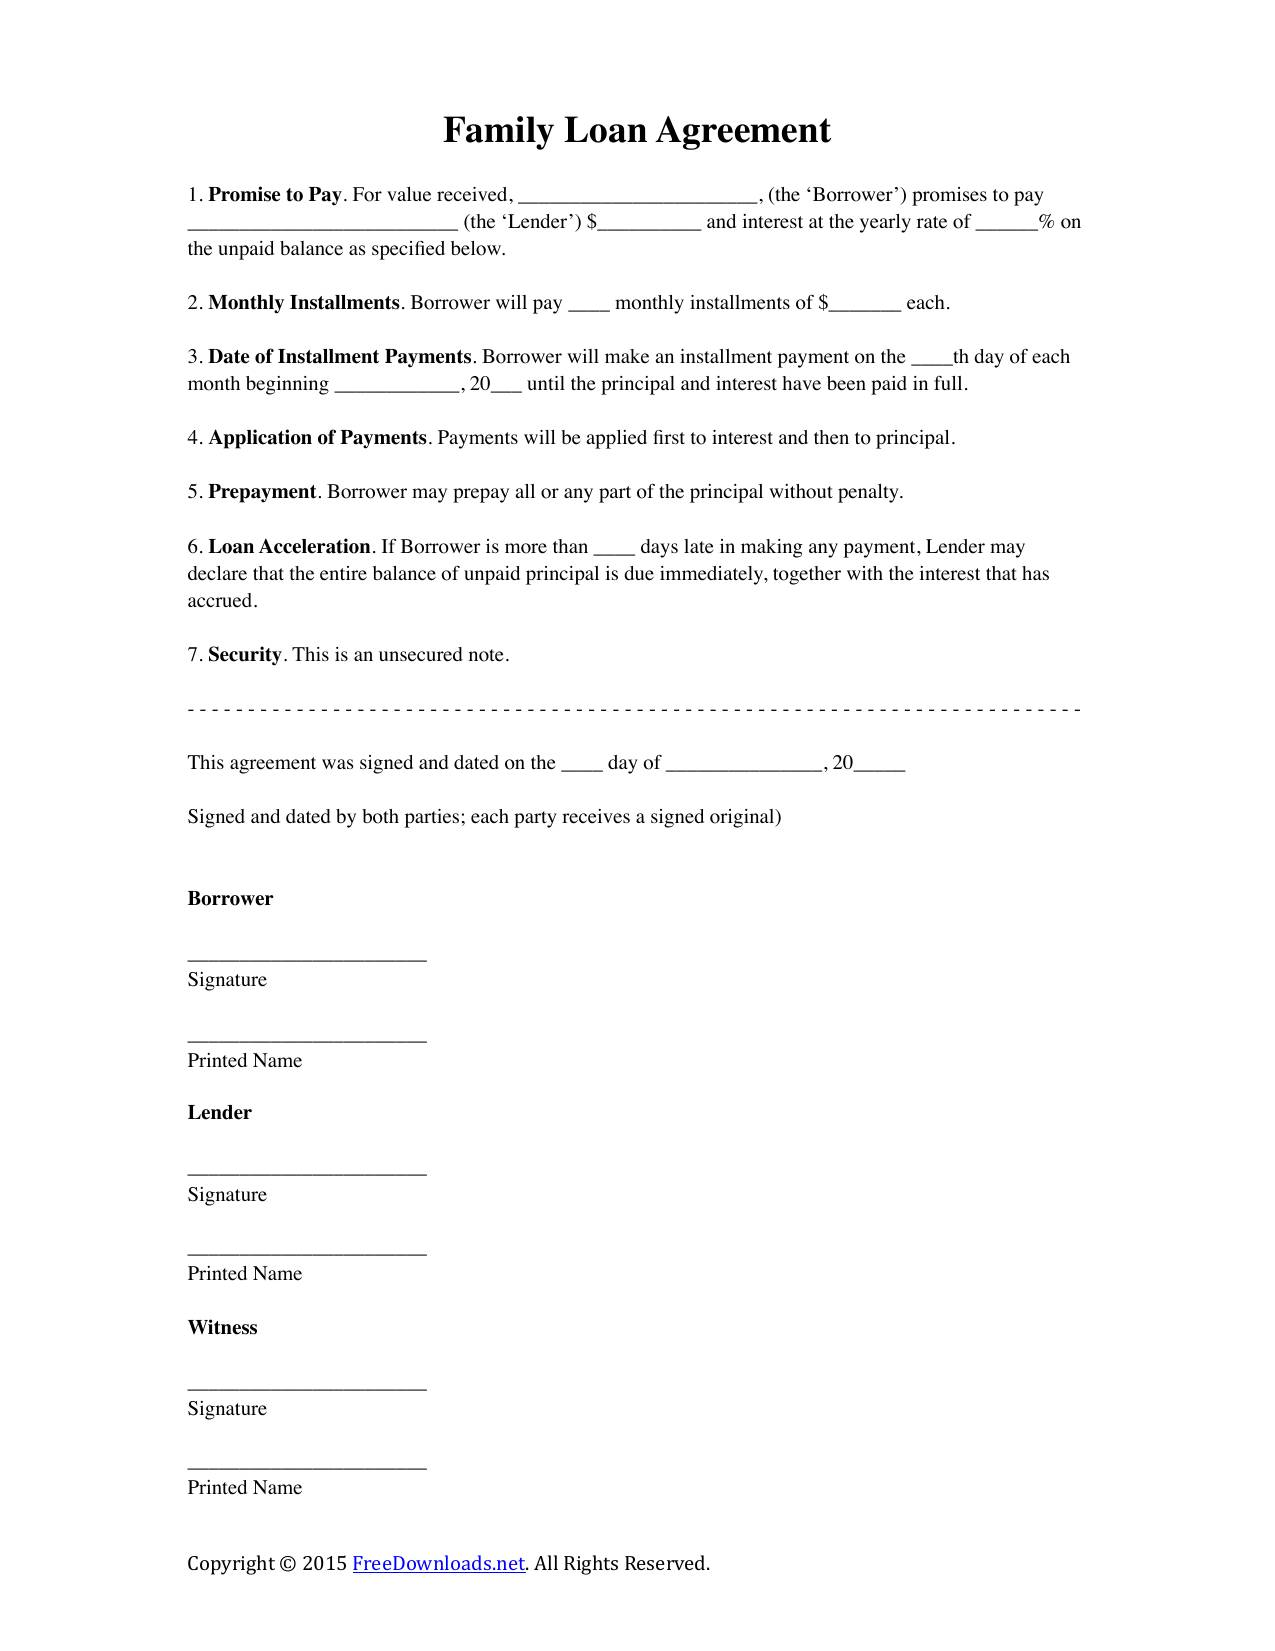 Intra Family Loan Agreement Template